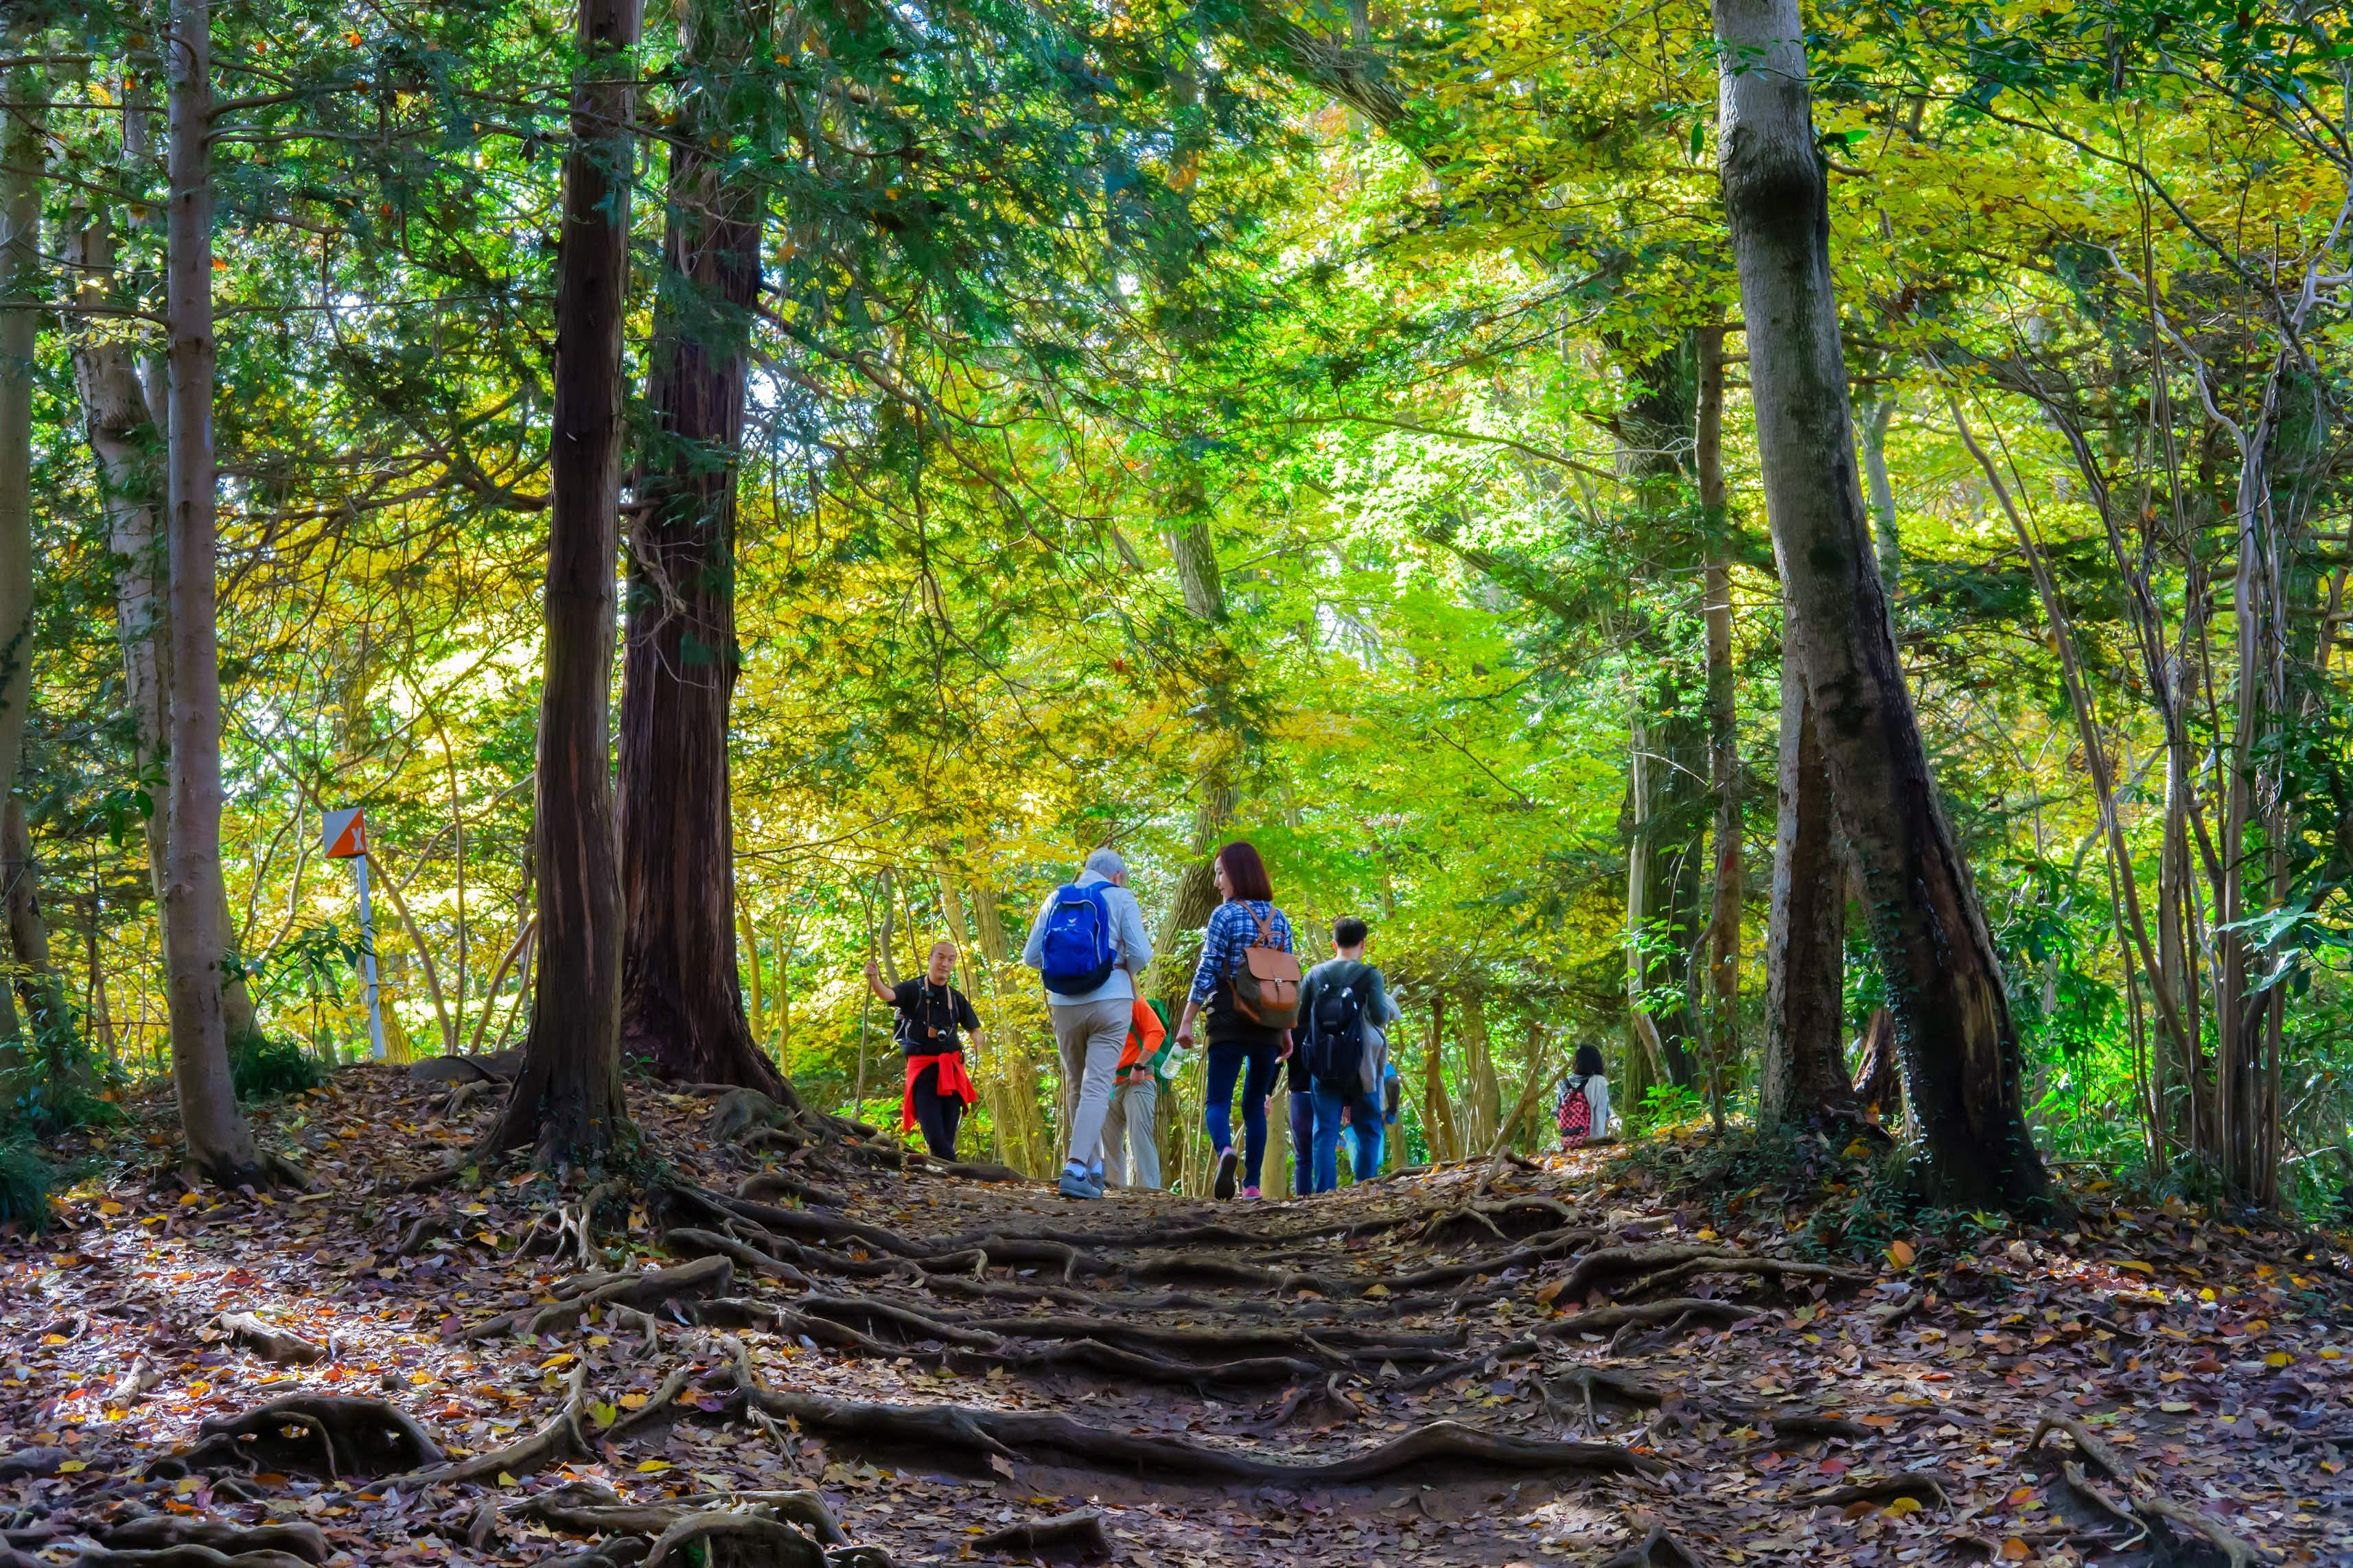 Self-reflection not selfies: why Tokyo's Mt Takao trek is a perfect complement to Mt Fuji